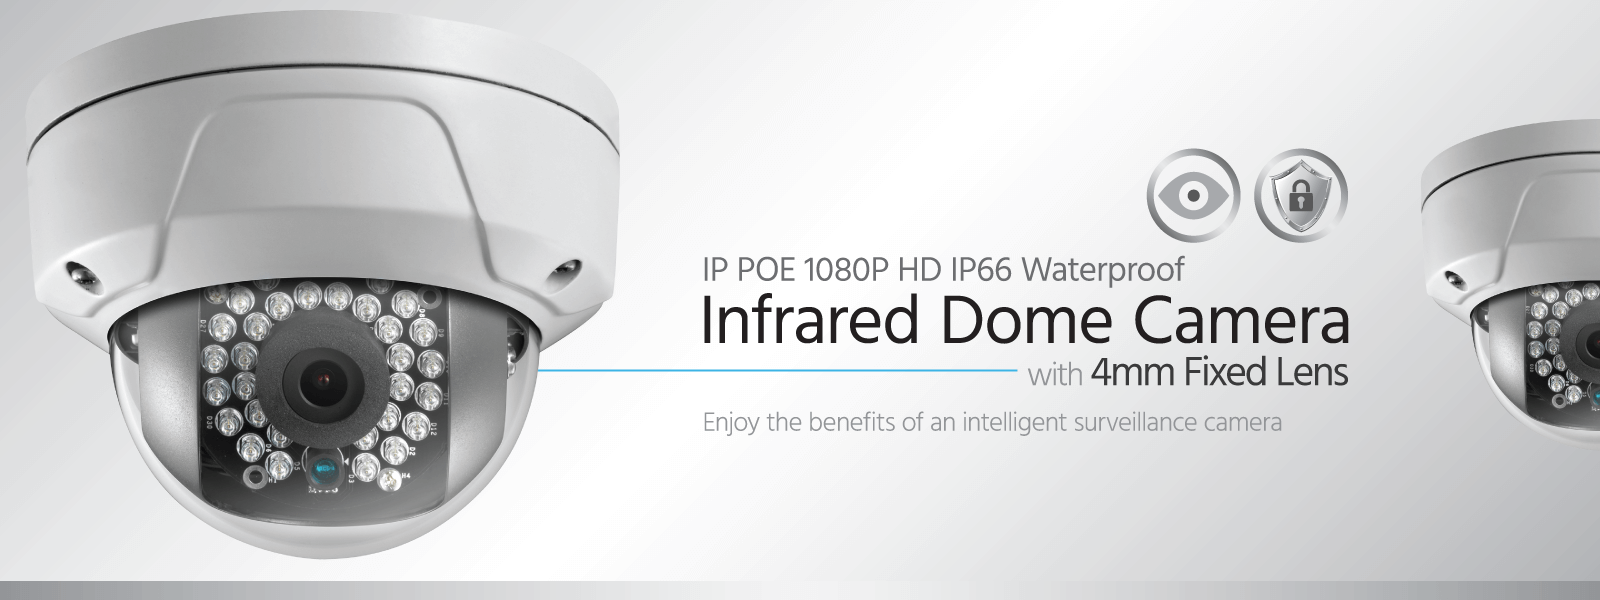 IP POE 1080P Infrared Dome Camera